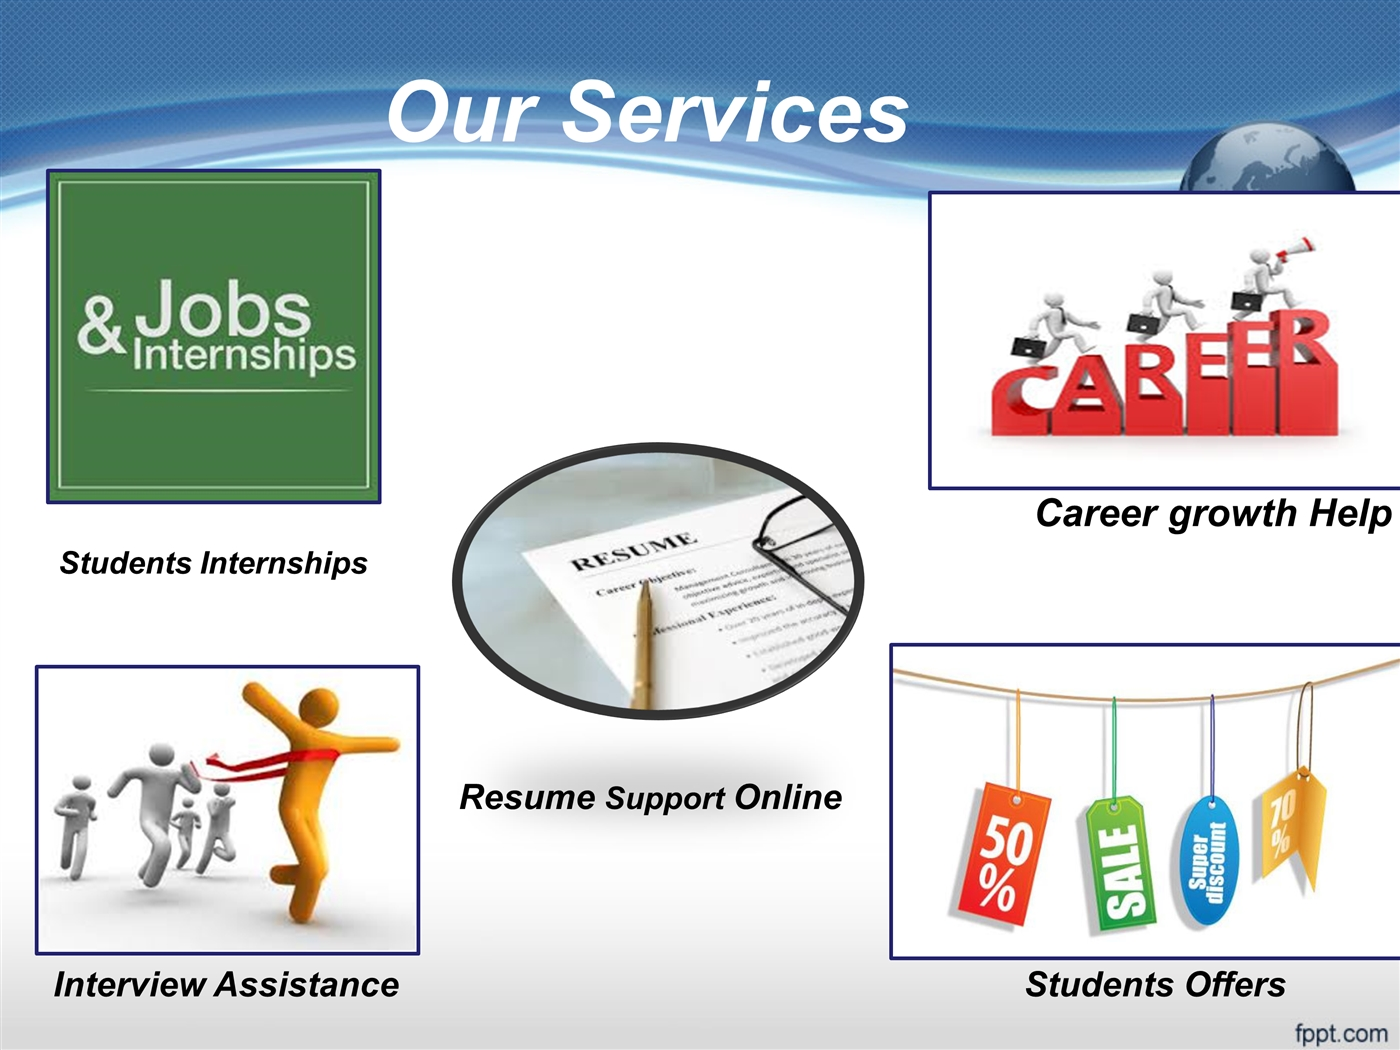 create resume recruitment online career assessment help create resume recruitment online career assessment help powerpoint presentation ppt